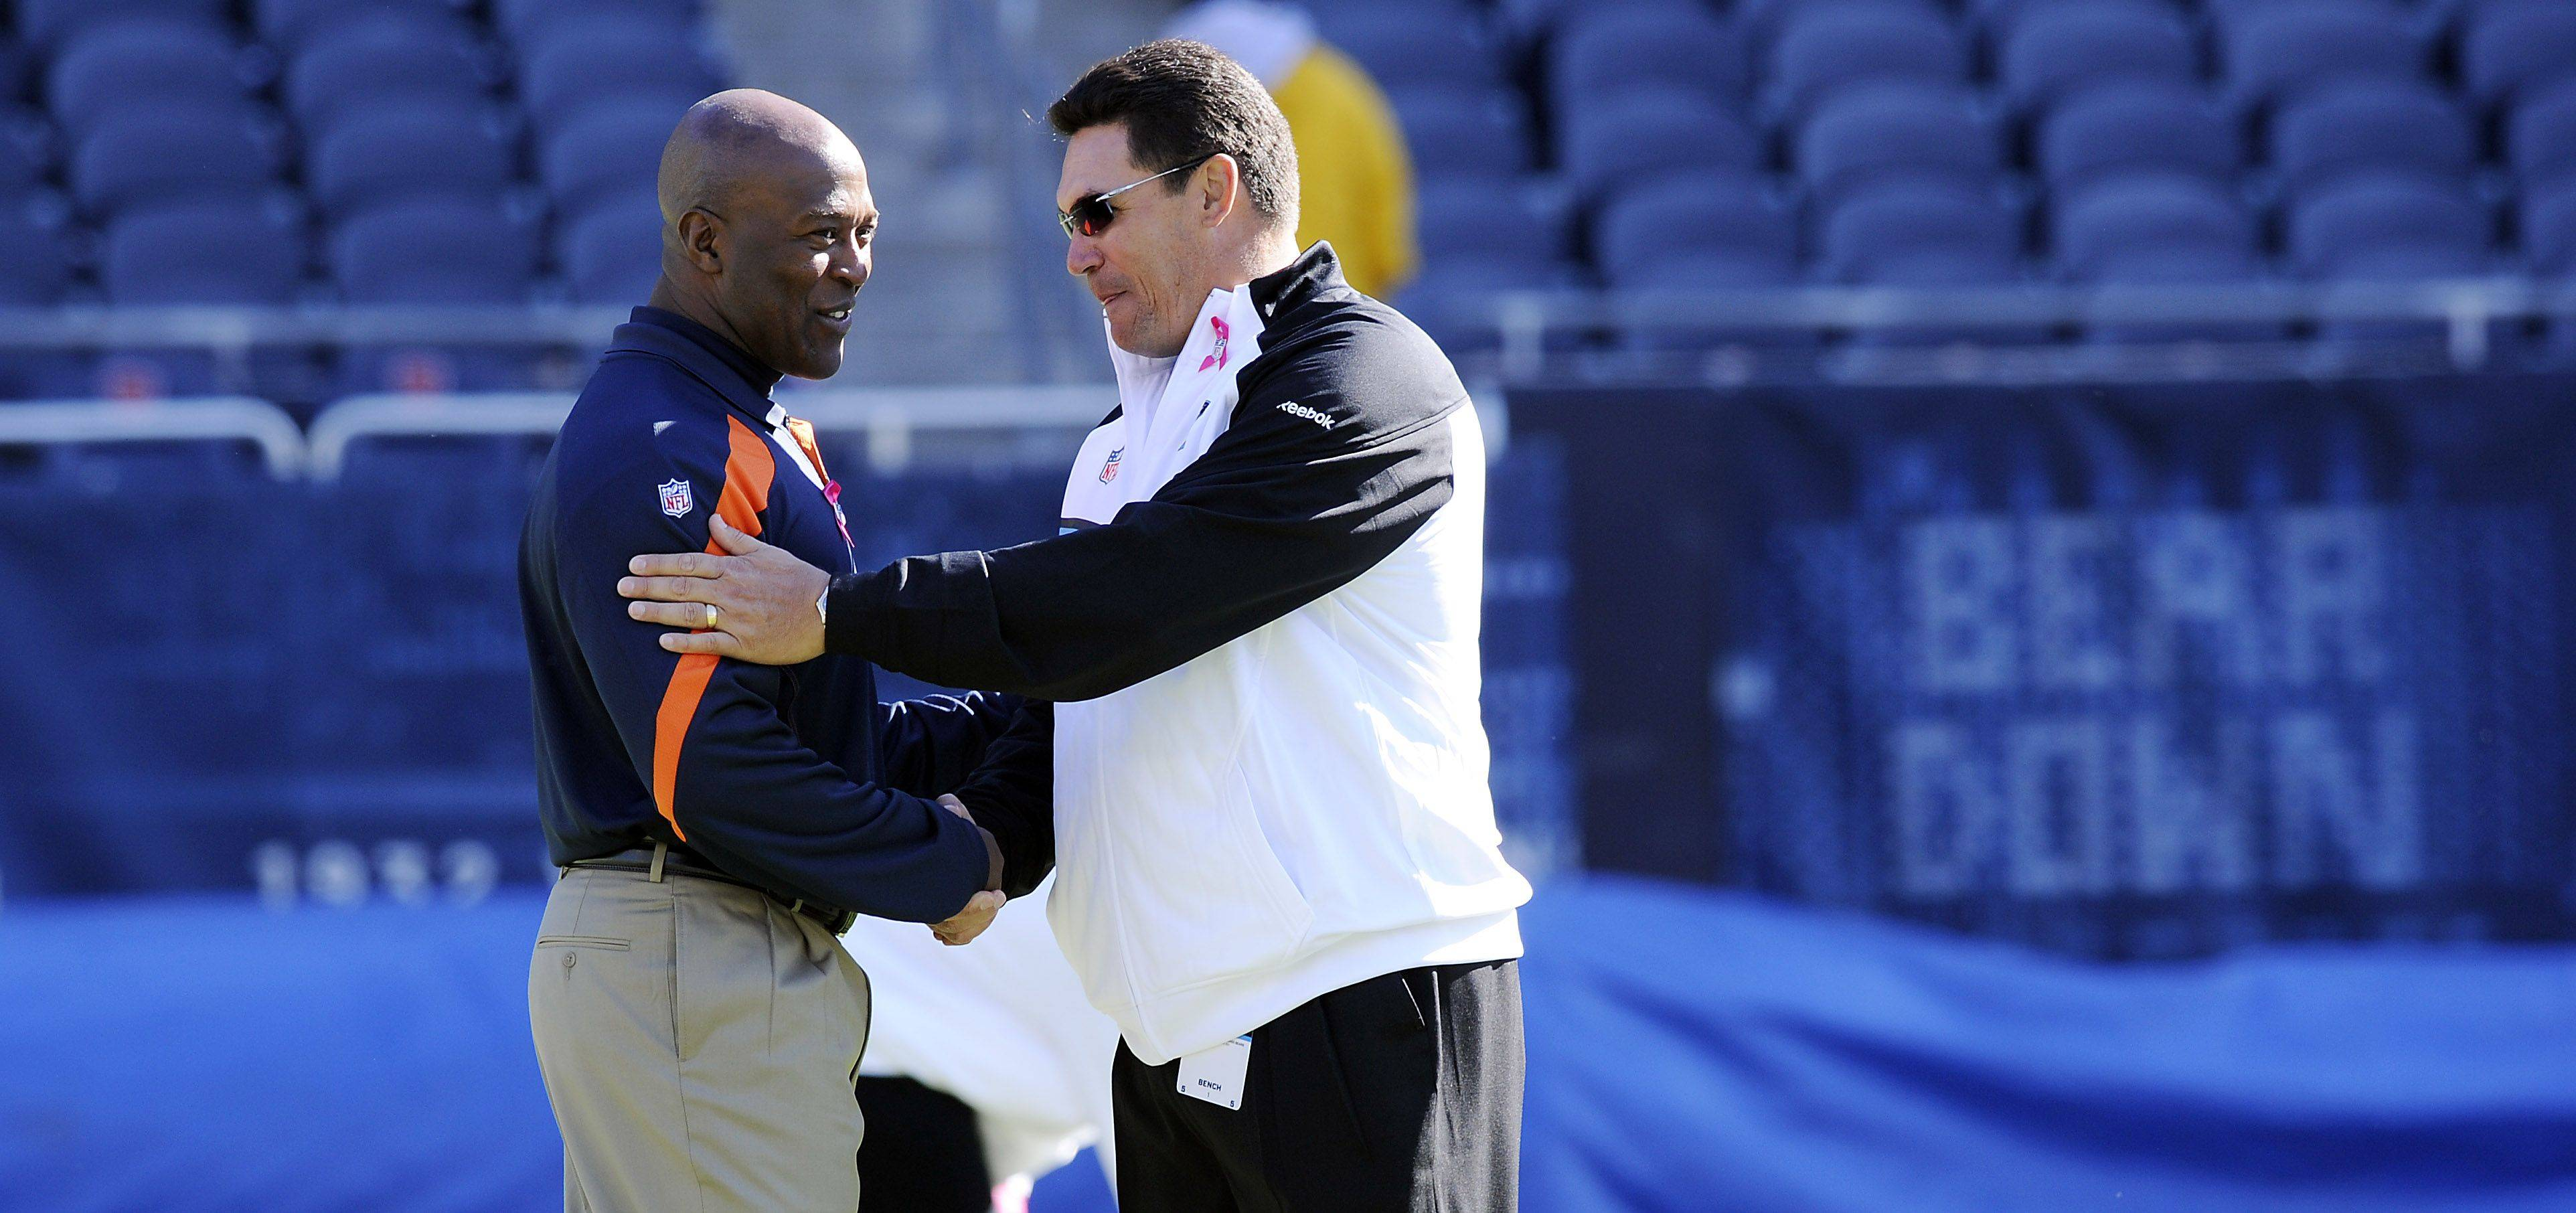 Chicago Bears coach Lovie Smith greets Panthers head coach Ron Rivera before the game.